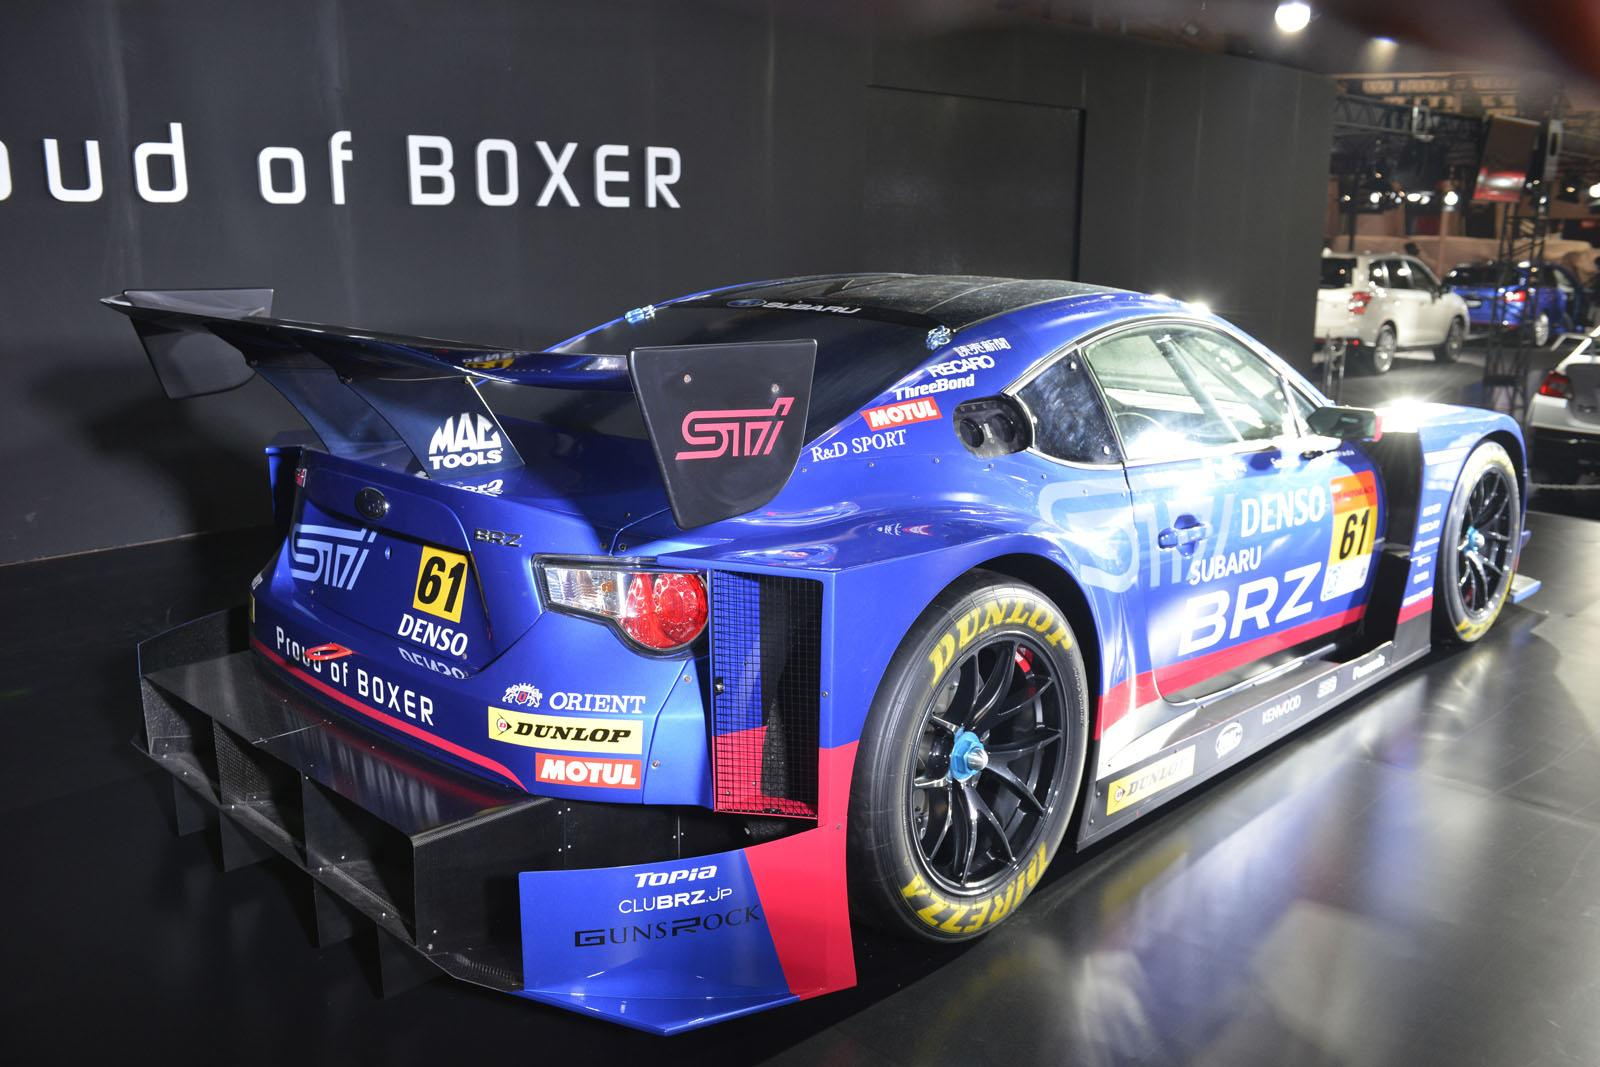 2015 Subaru Racers Revealed: WRX STI for Nurburgring 24H and BRZ GT300 ...